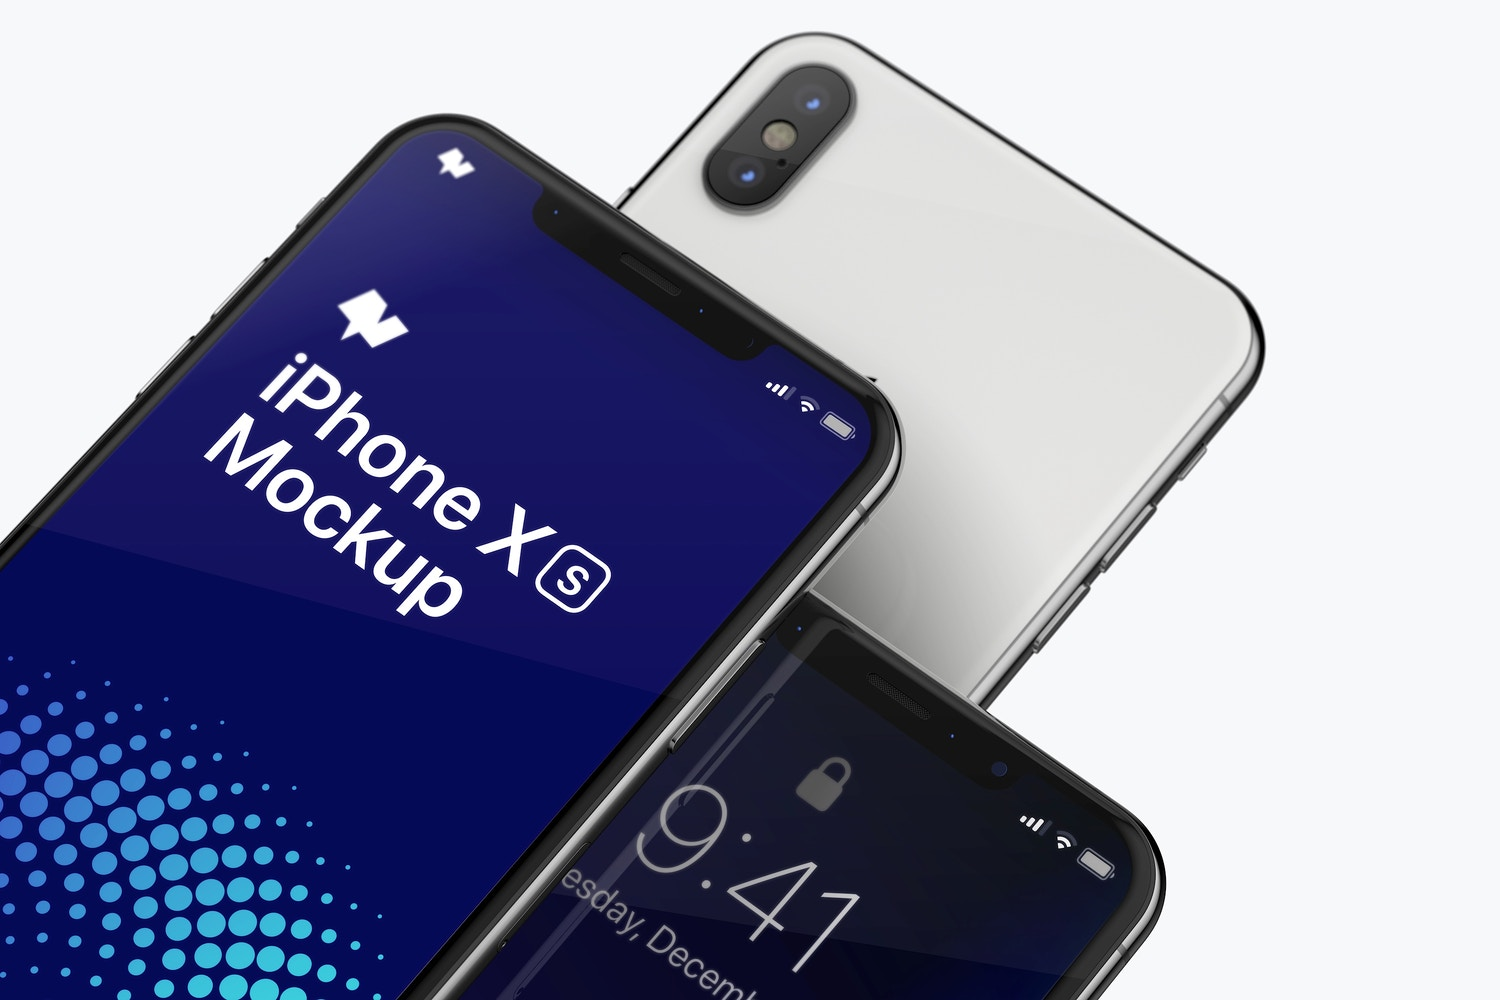 iPhone XS Max Mockup, Close Up 02 by Original Mockups on Original Mockups